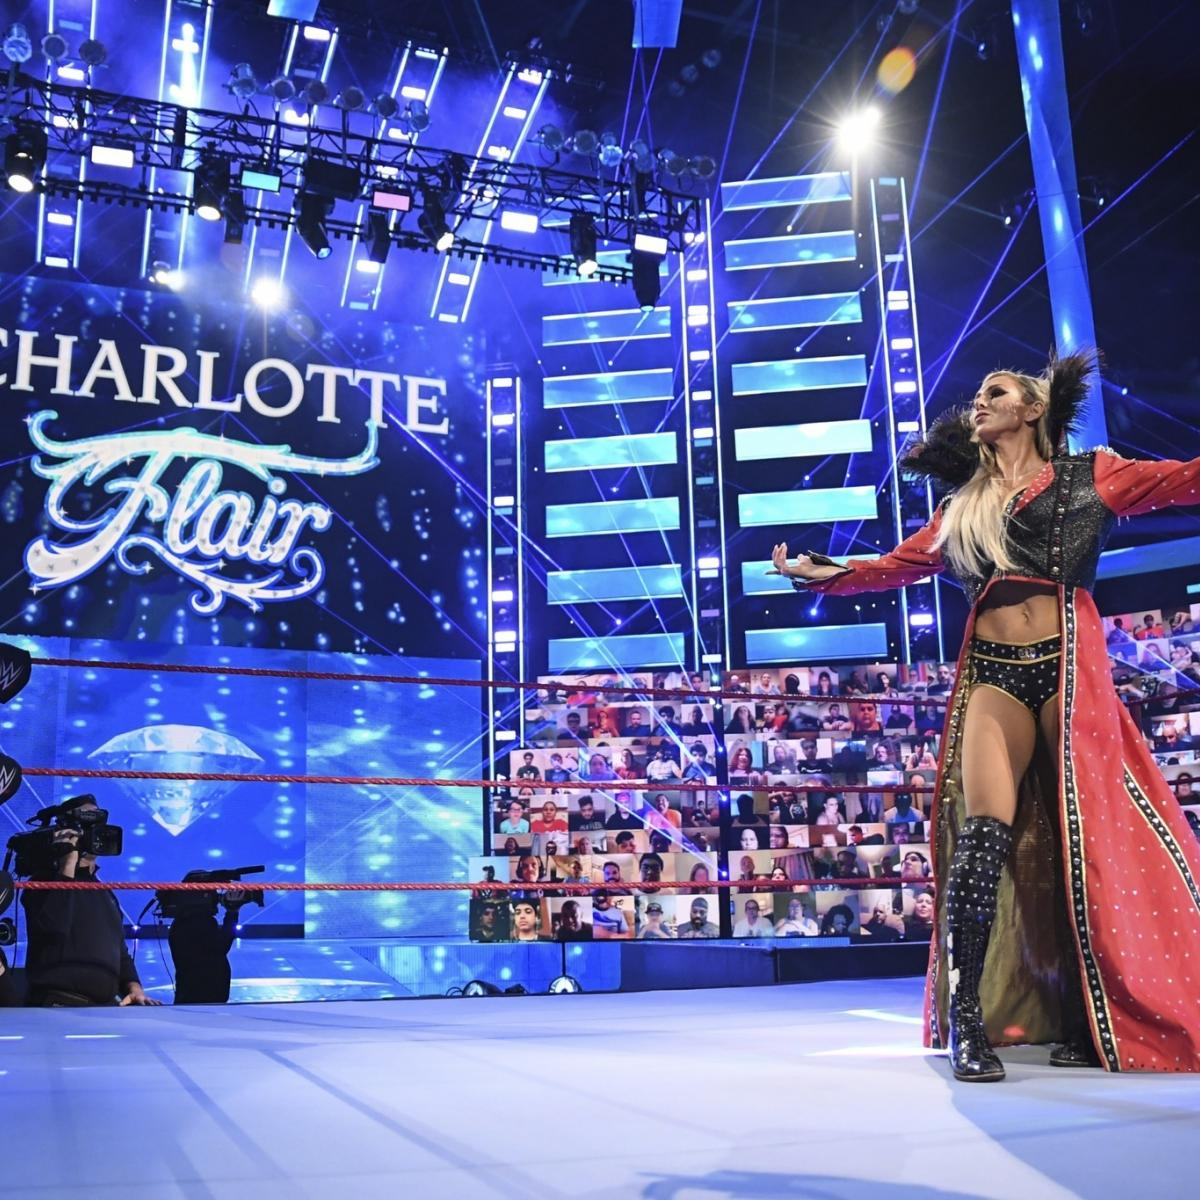 Charlotte Flair Dishes on Hell in a Cell, All-Women's WWE Show, Andrade and More